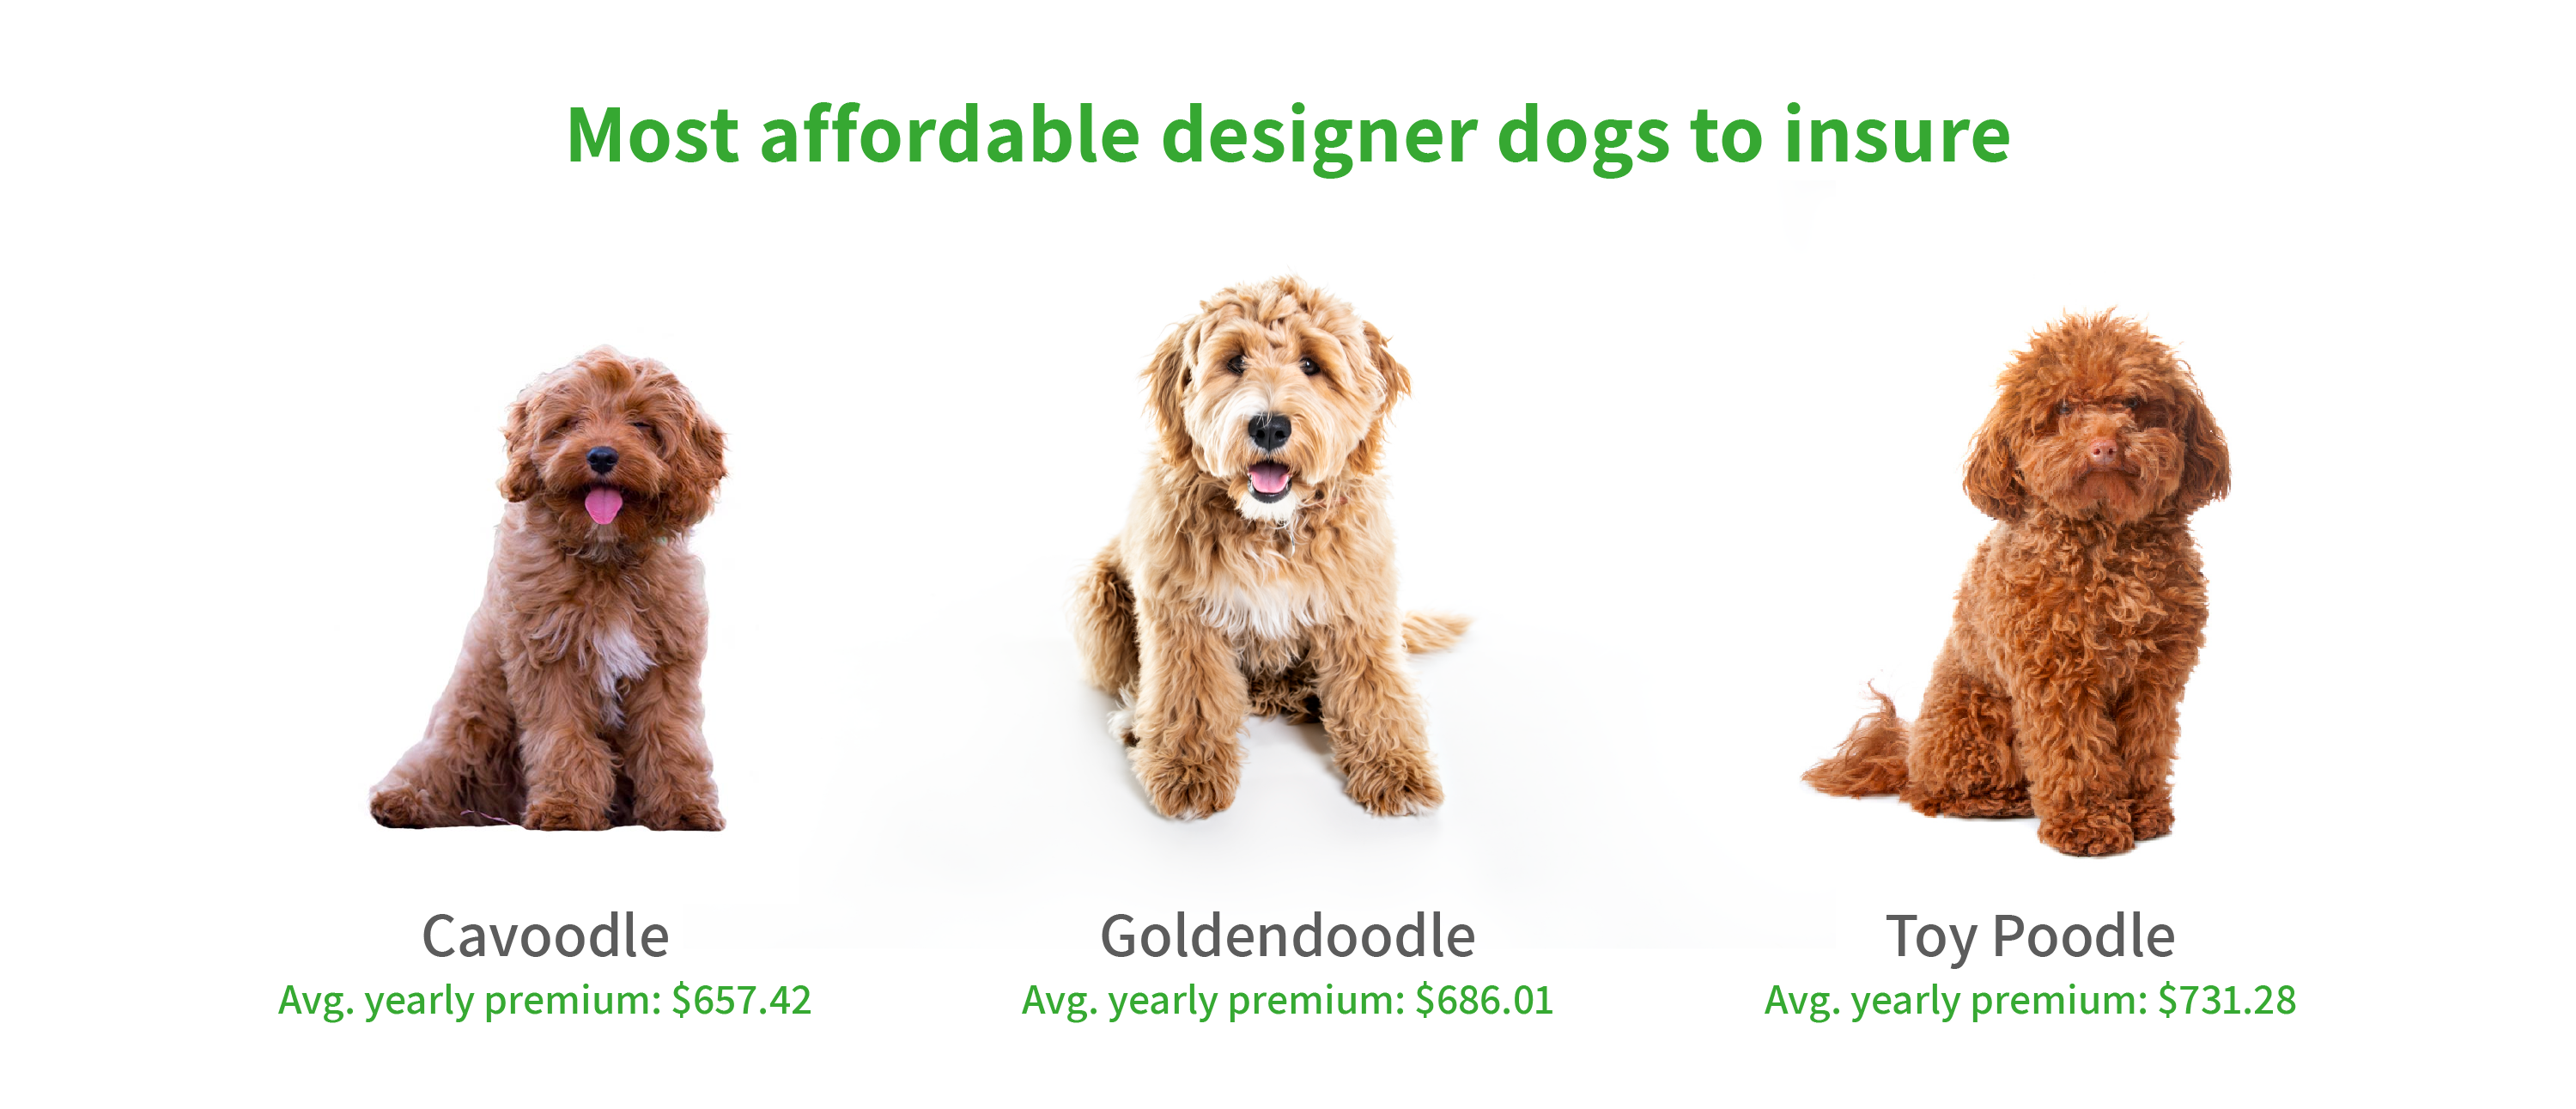 Graphic showing most affordable designer dogs to insure.